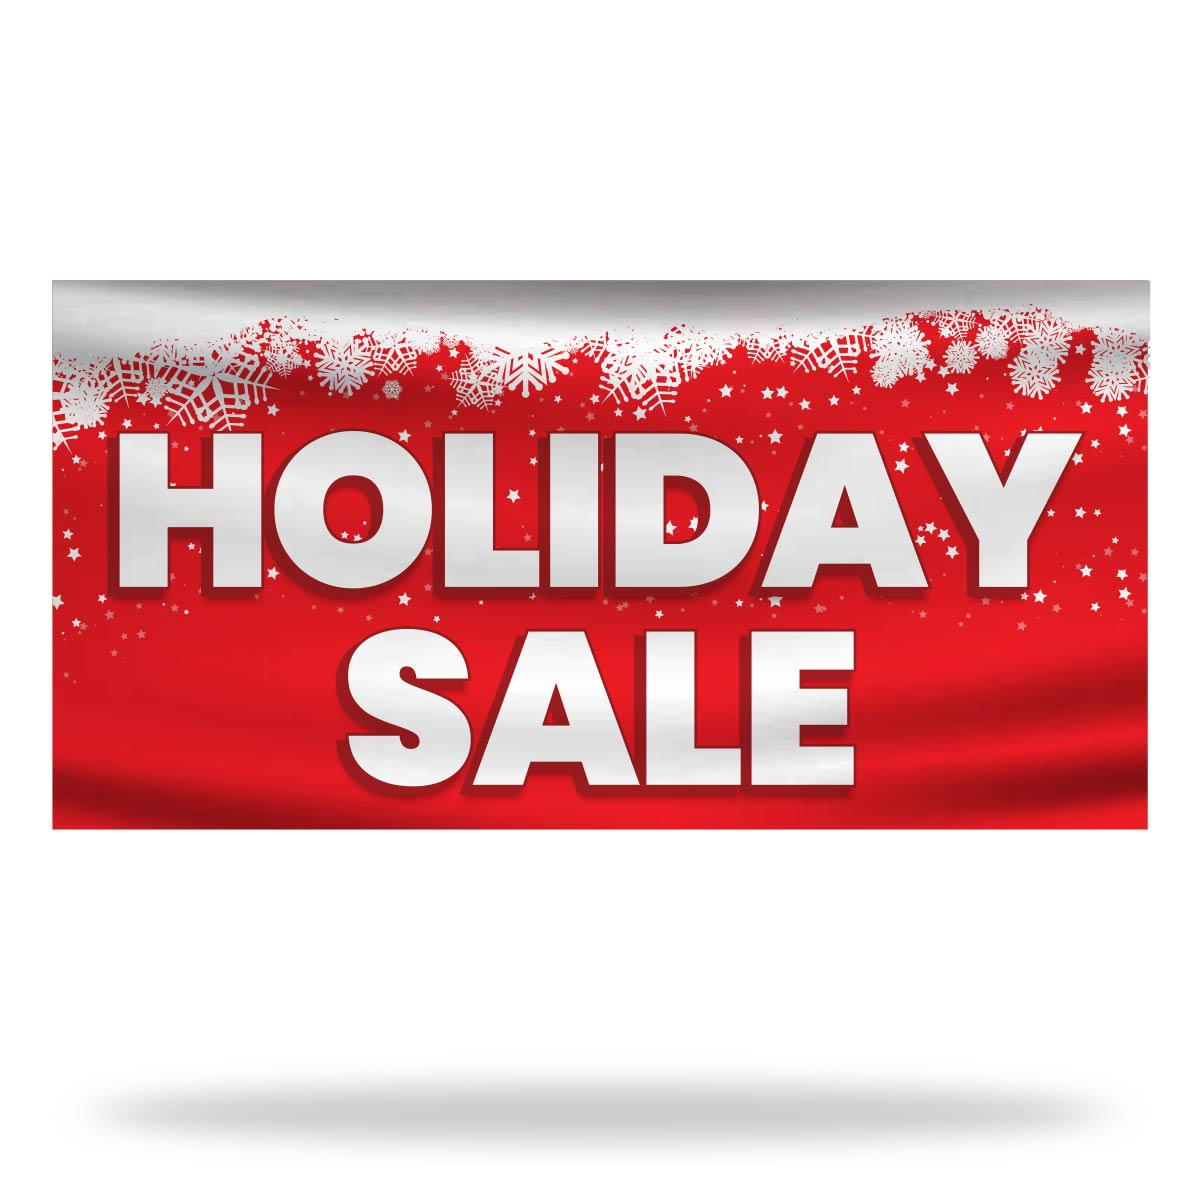 Holiday Sale Flags & Banners Design 02